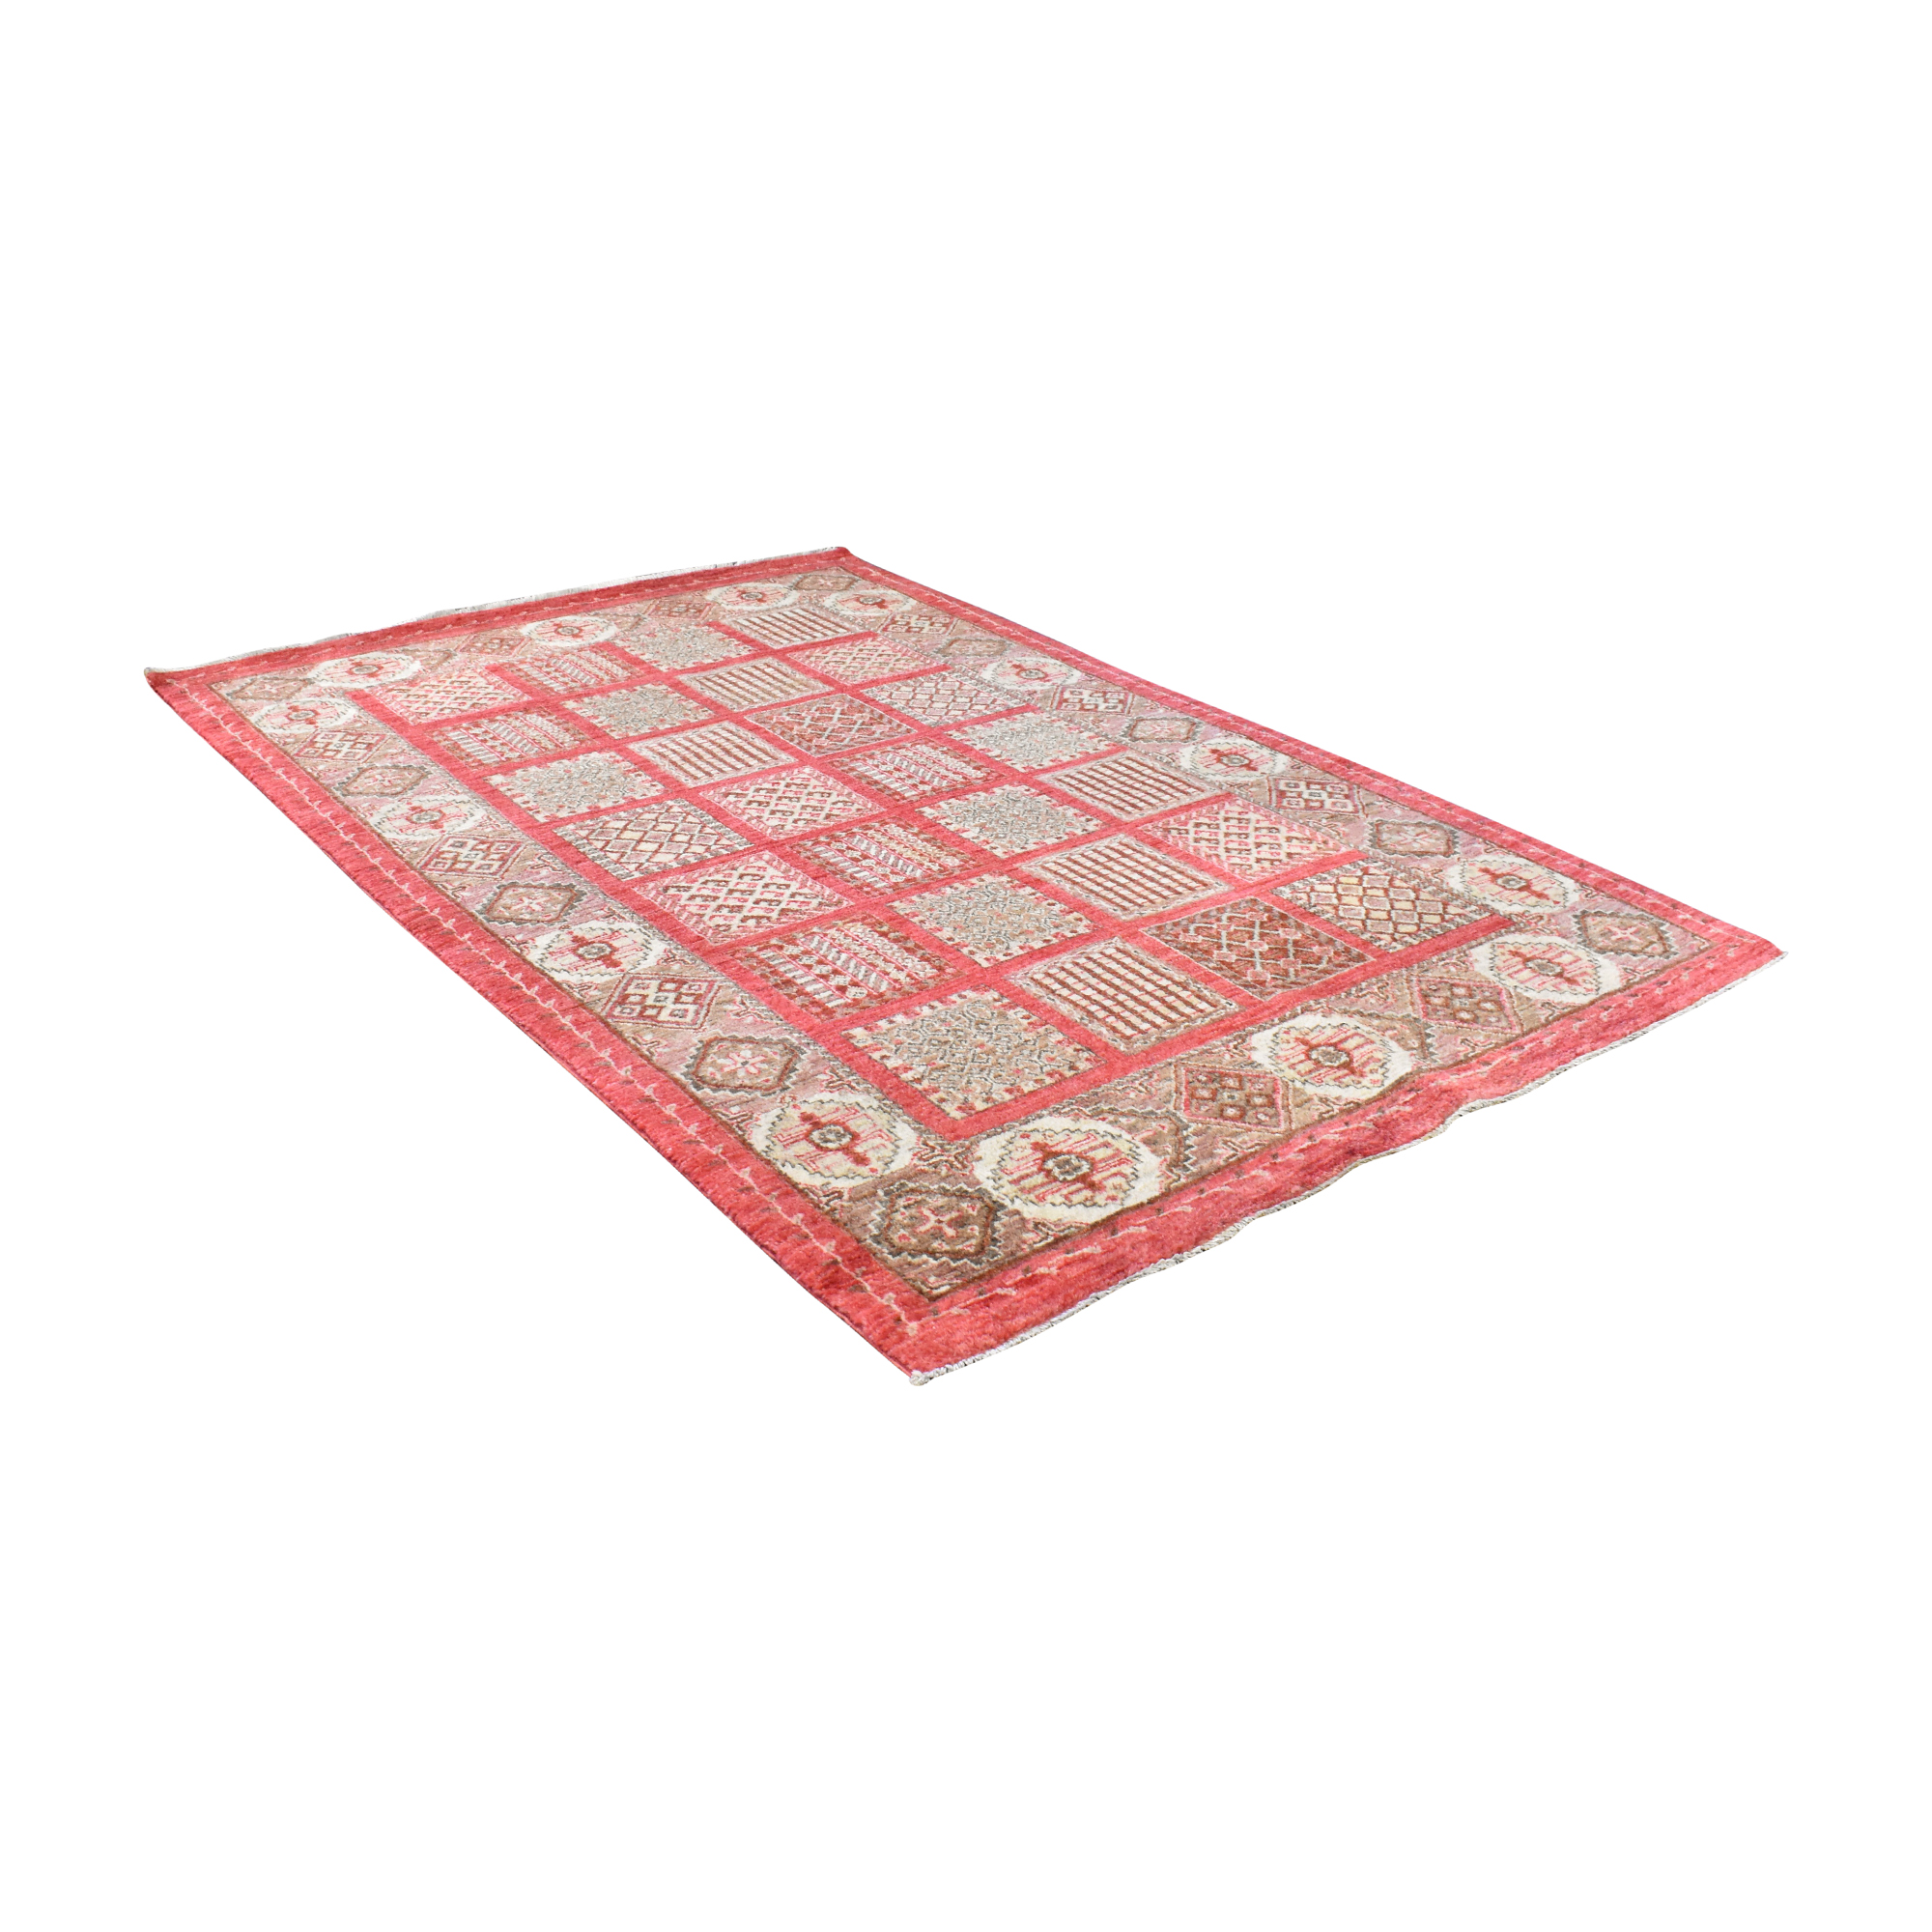 Couristan Patterned Area Rug / Rugs